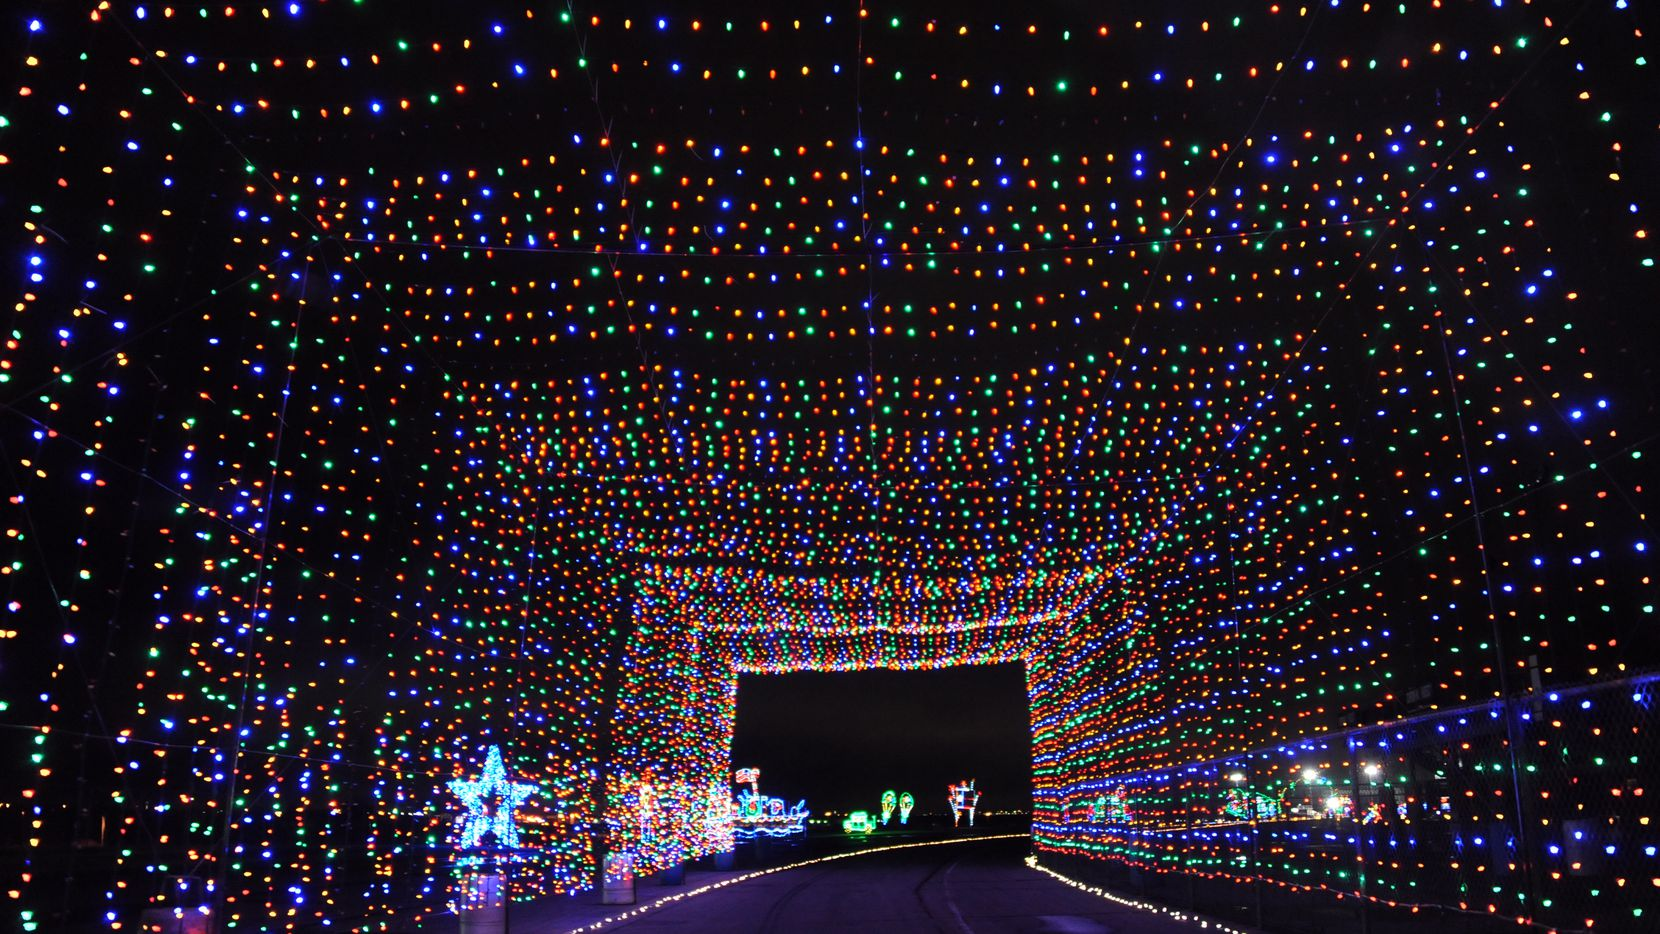 gift of lights - Sobace.appscounab.co